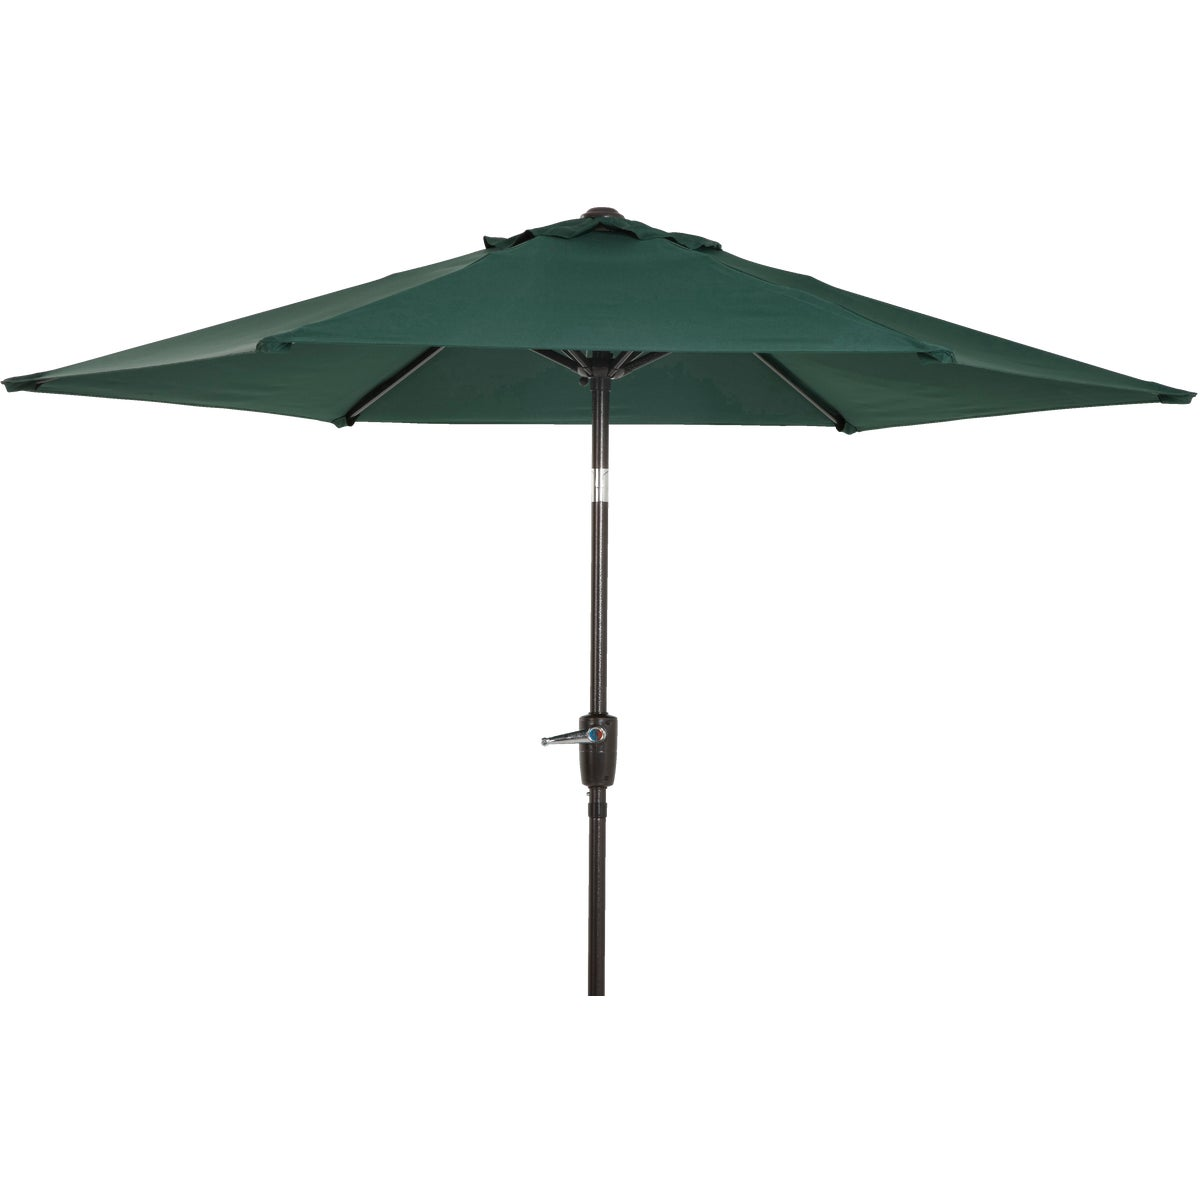 7.5' GREEN UMBRELLA - TJAU-004A-230-GRN by Do it Best